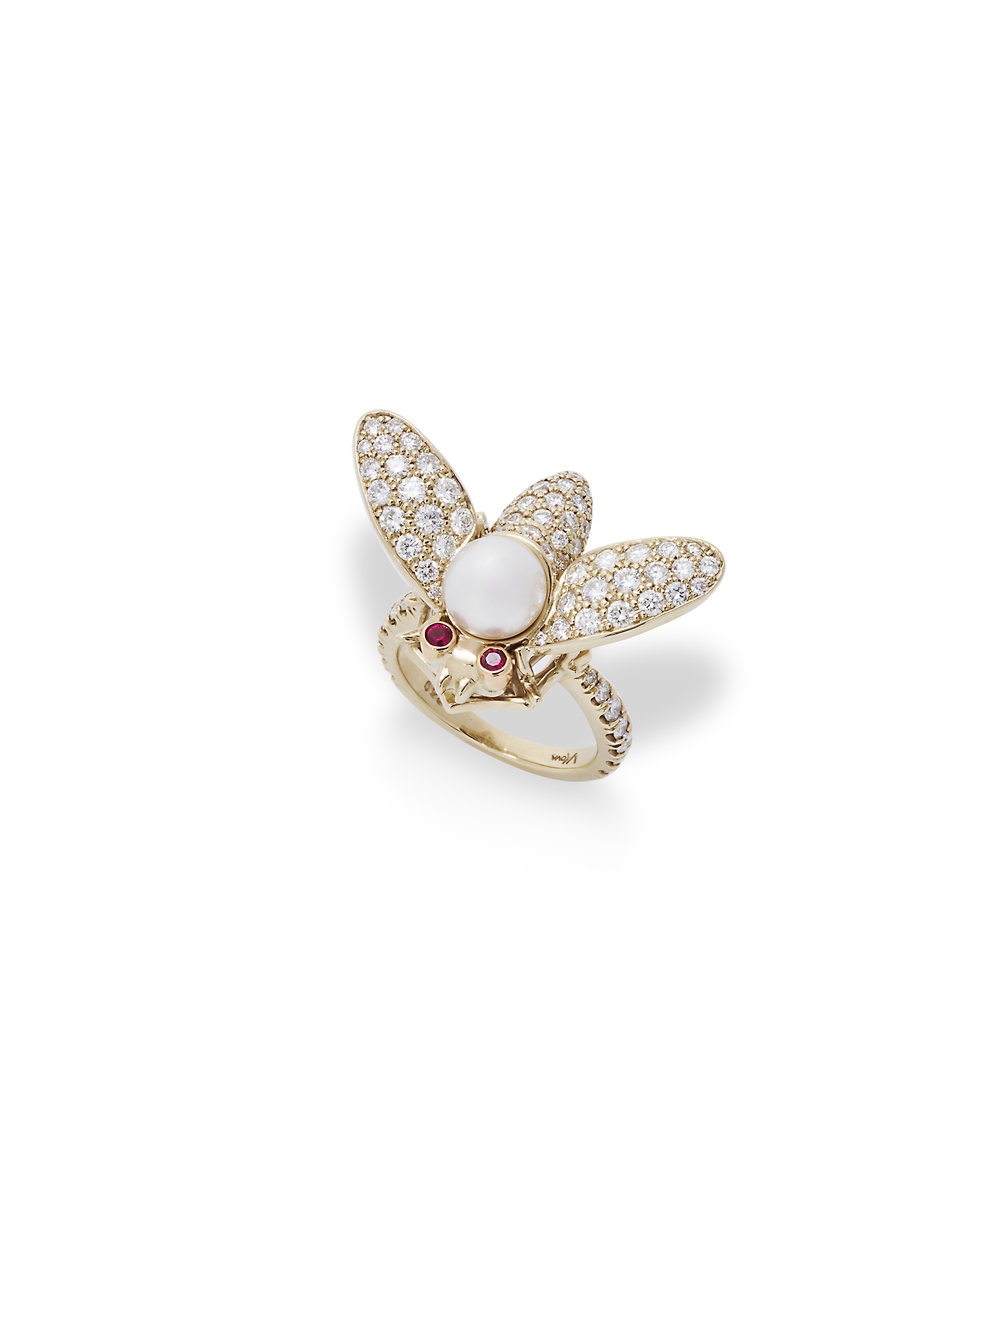 VALENTINA BUG RING   18 K GOLD 2.0 CT OF DIAMONDS .16 CT OF RUBY